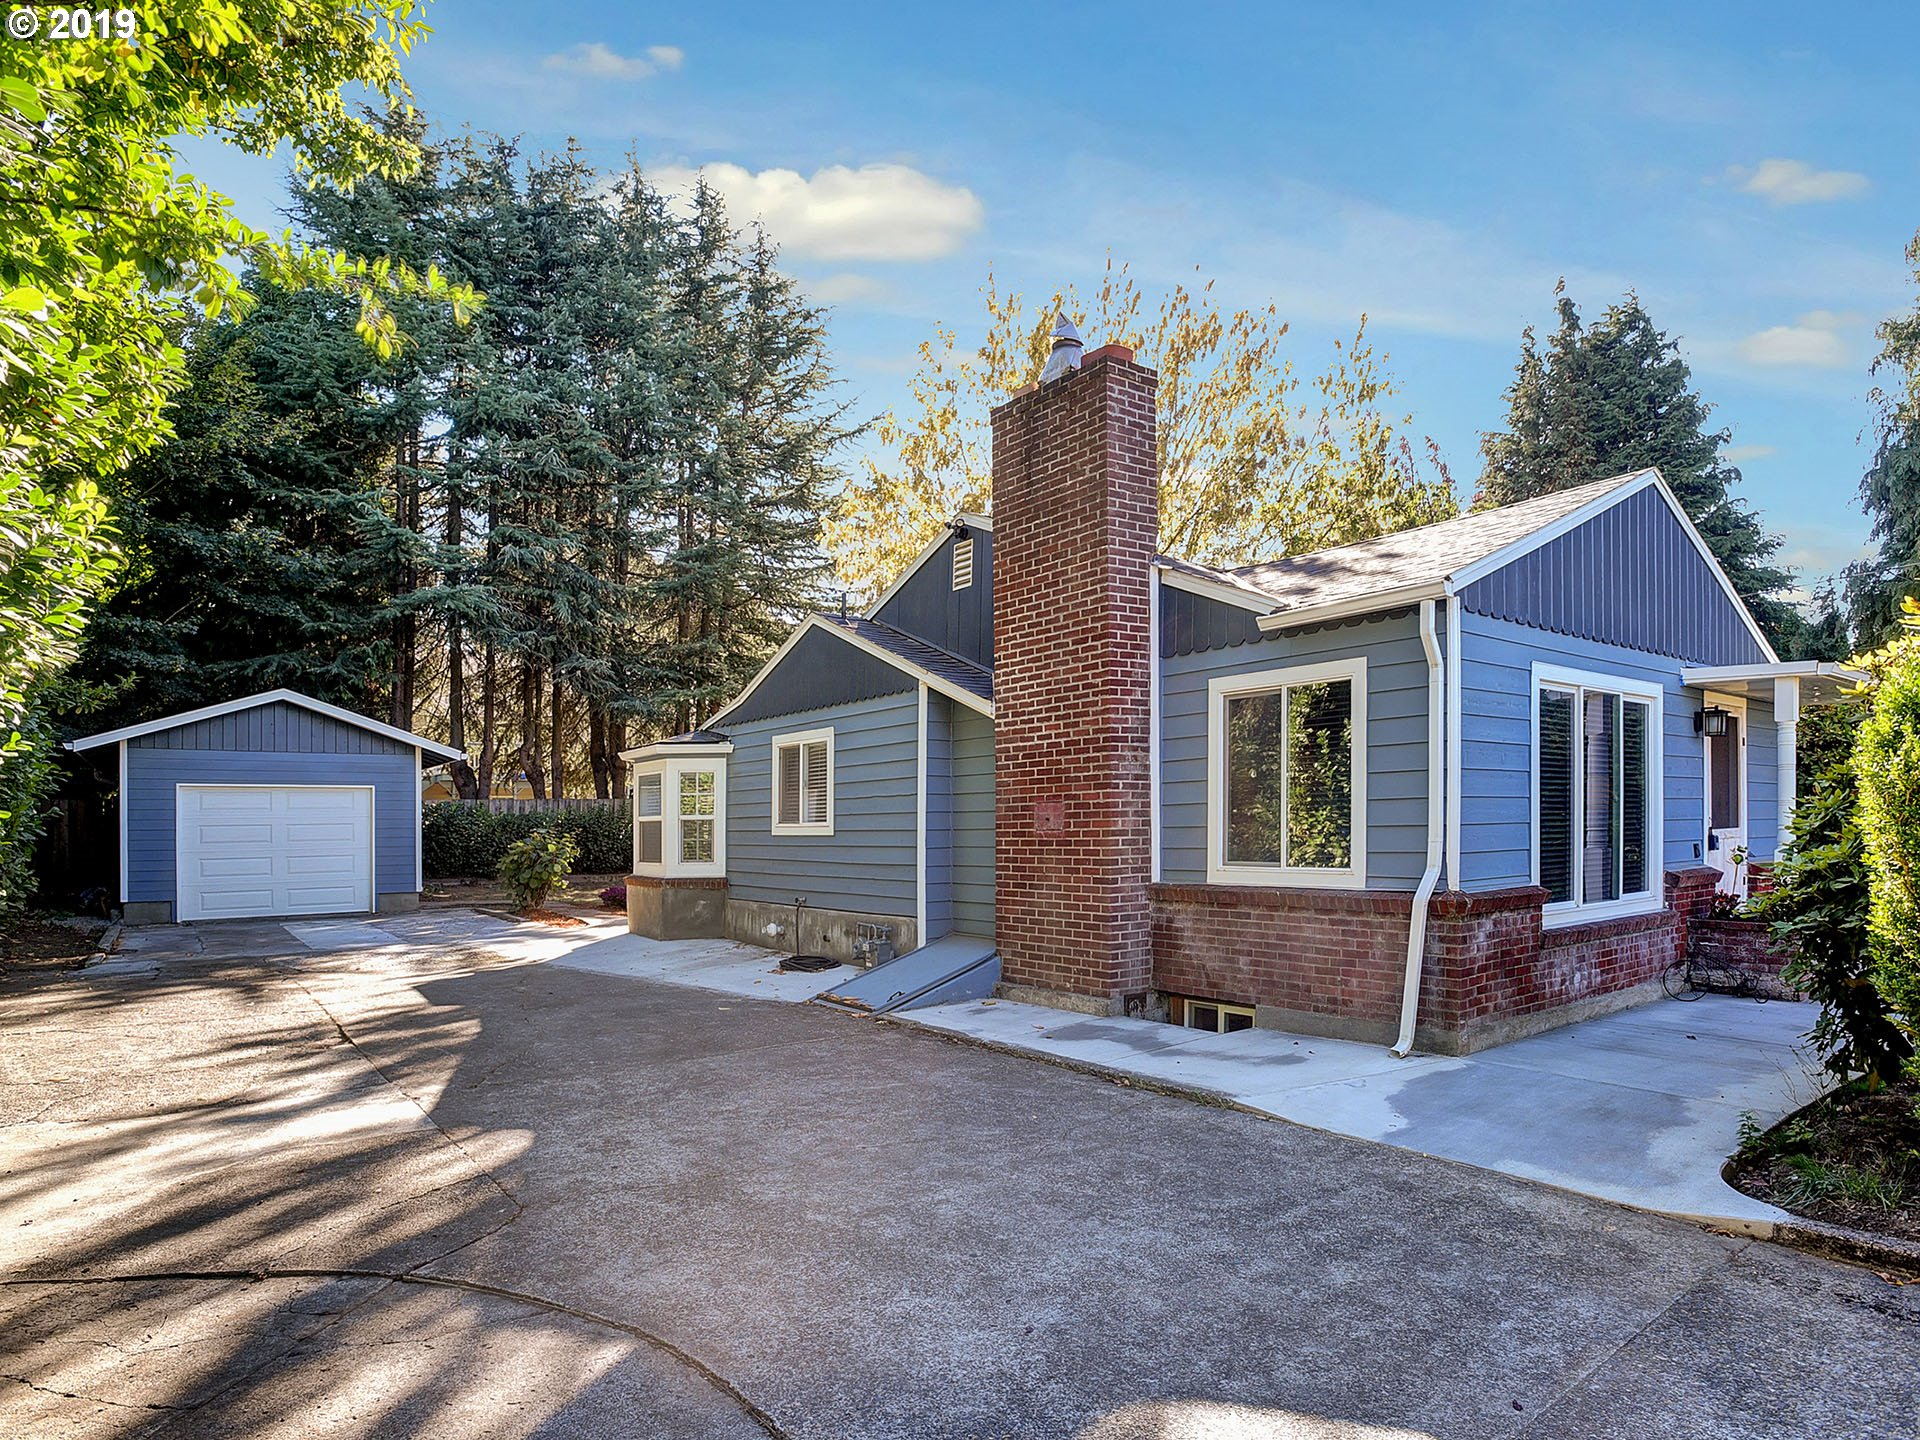 Photo for 4820 NE PORTLAND HWY, Portland, OR 97218 (MLS # 19147236)